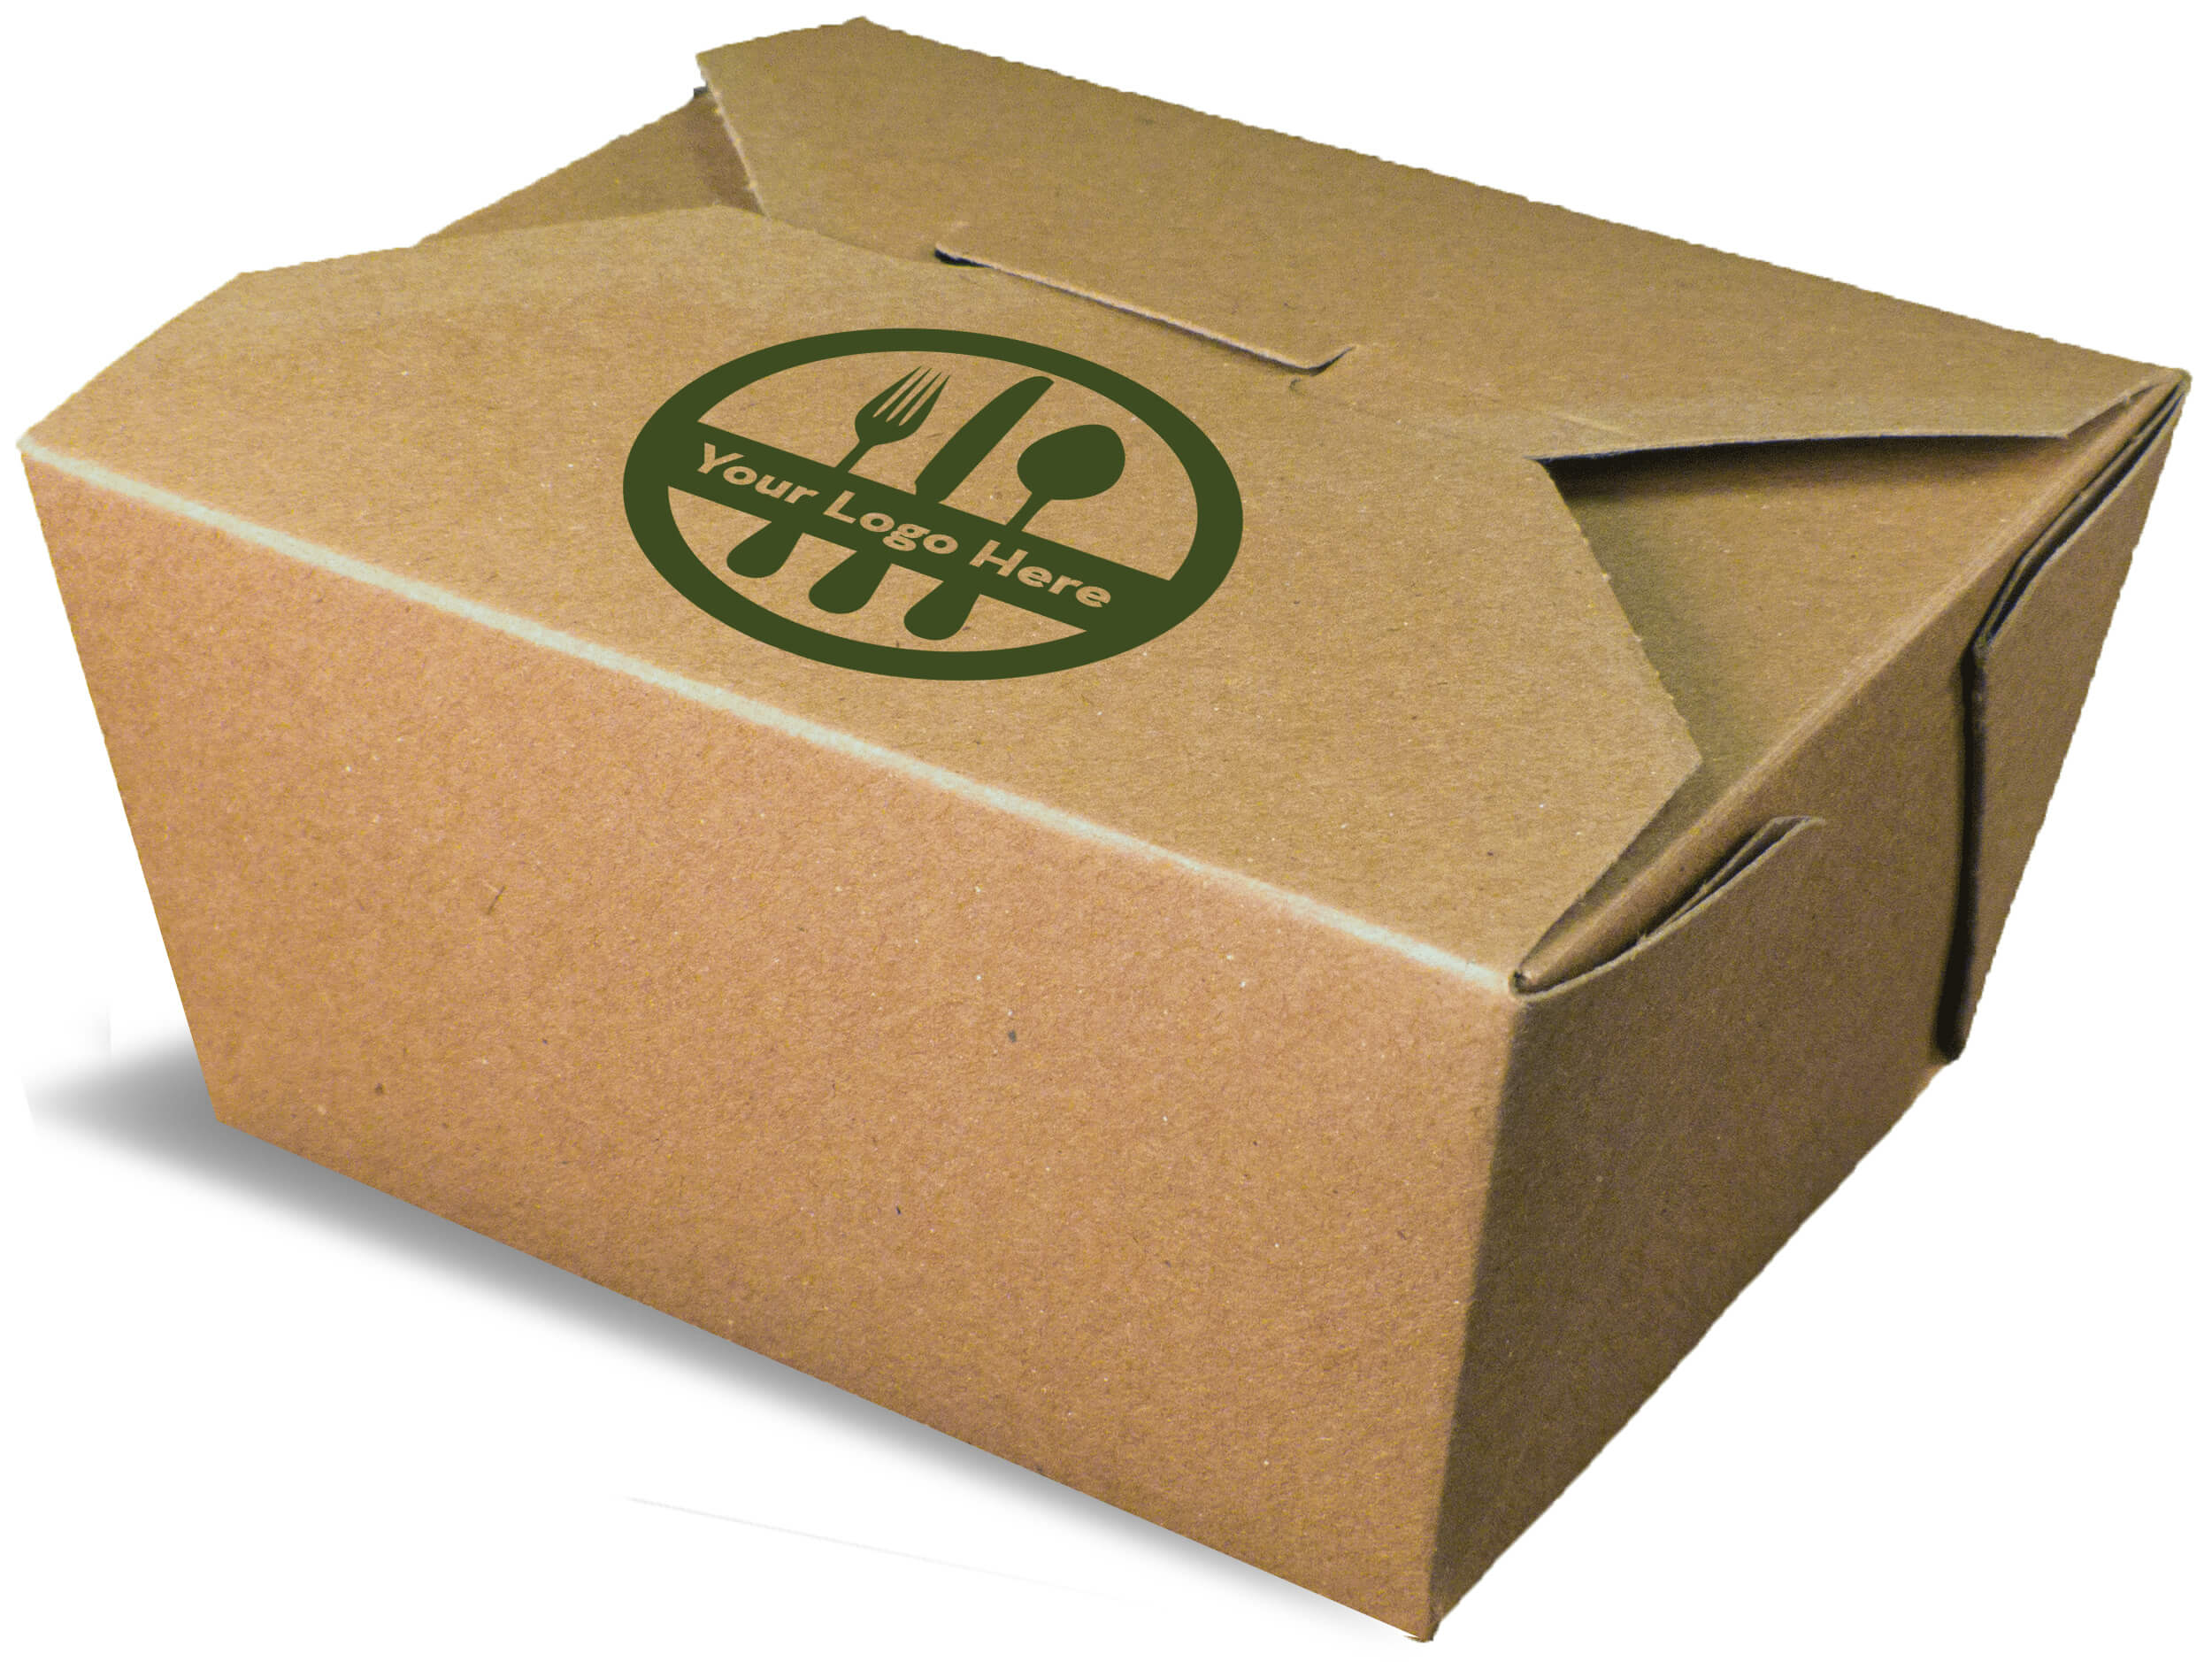 A brown rendering of an Bio-Plus Terra II folding carton container with a printed logo.